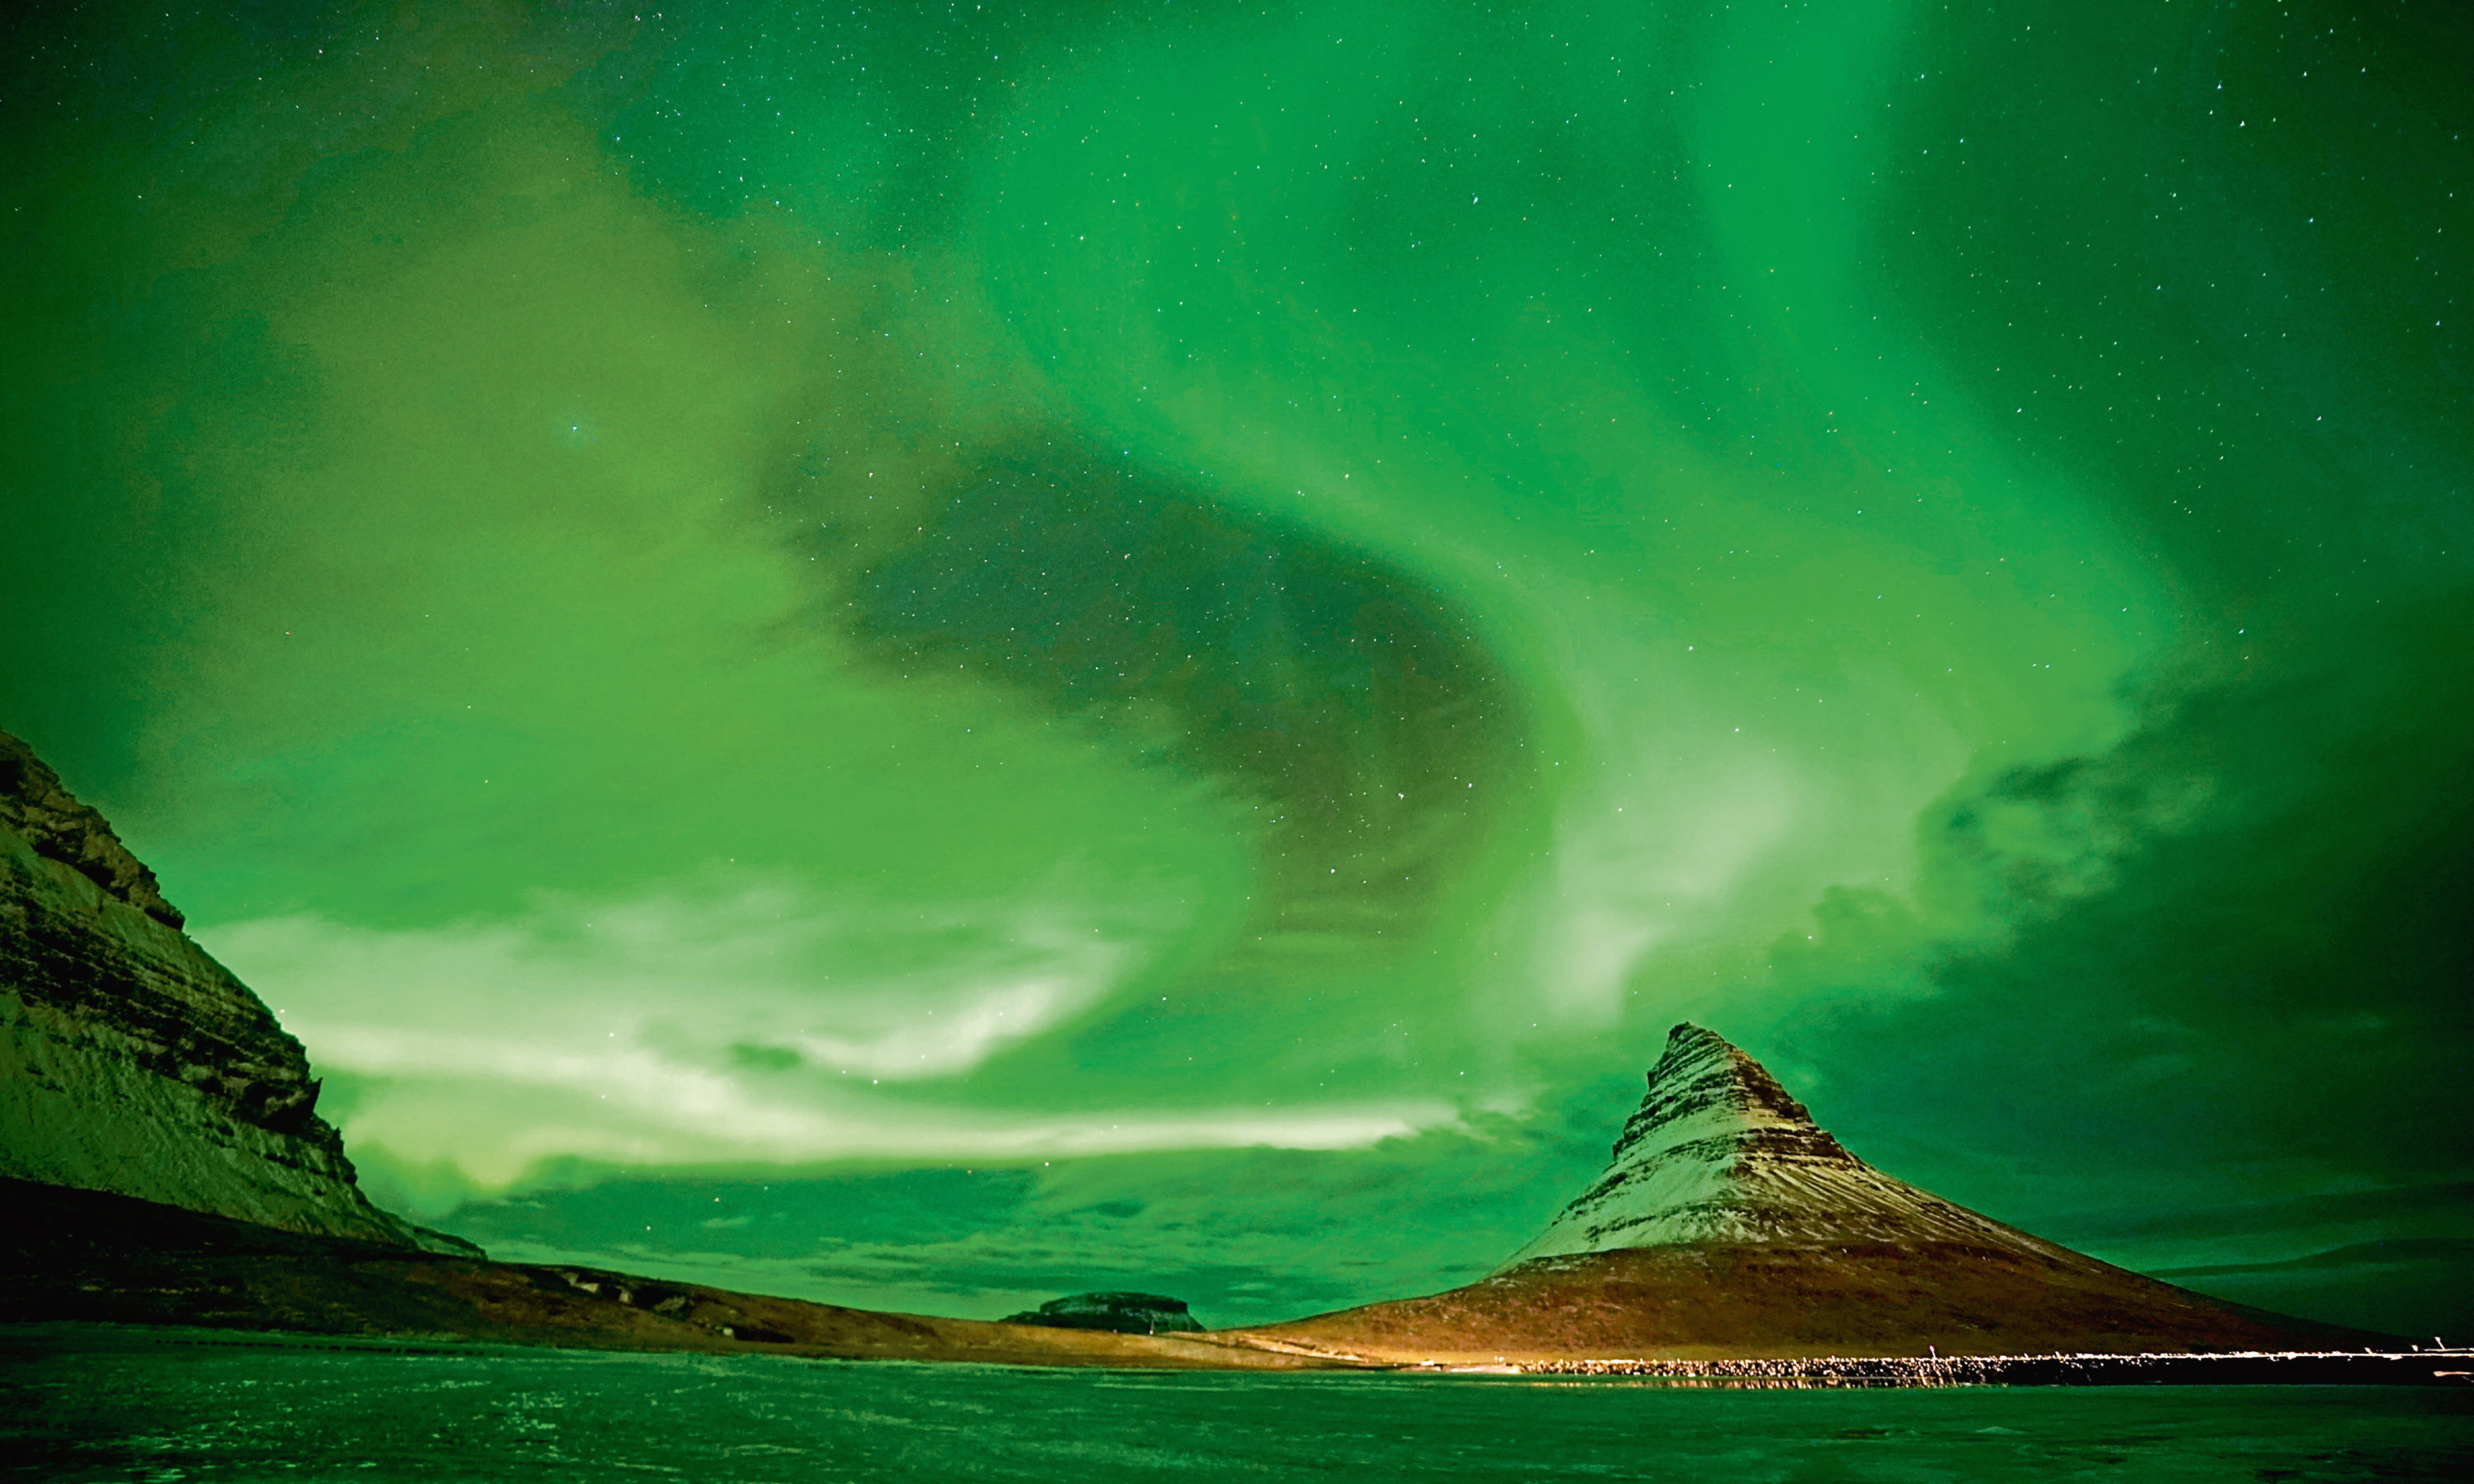 Geomagnetic storms could bring Northern Lights displays to Tayside